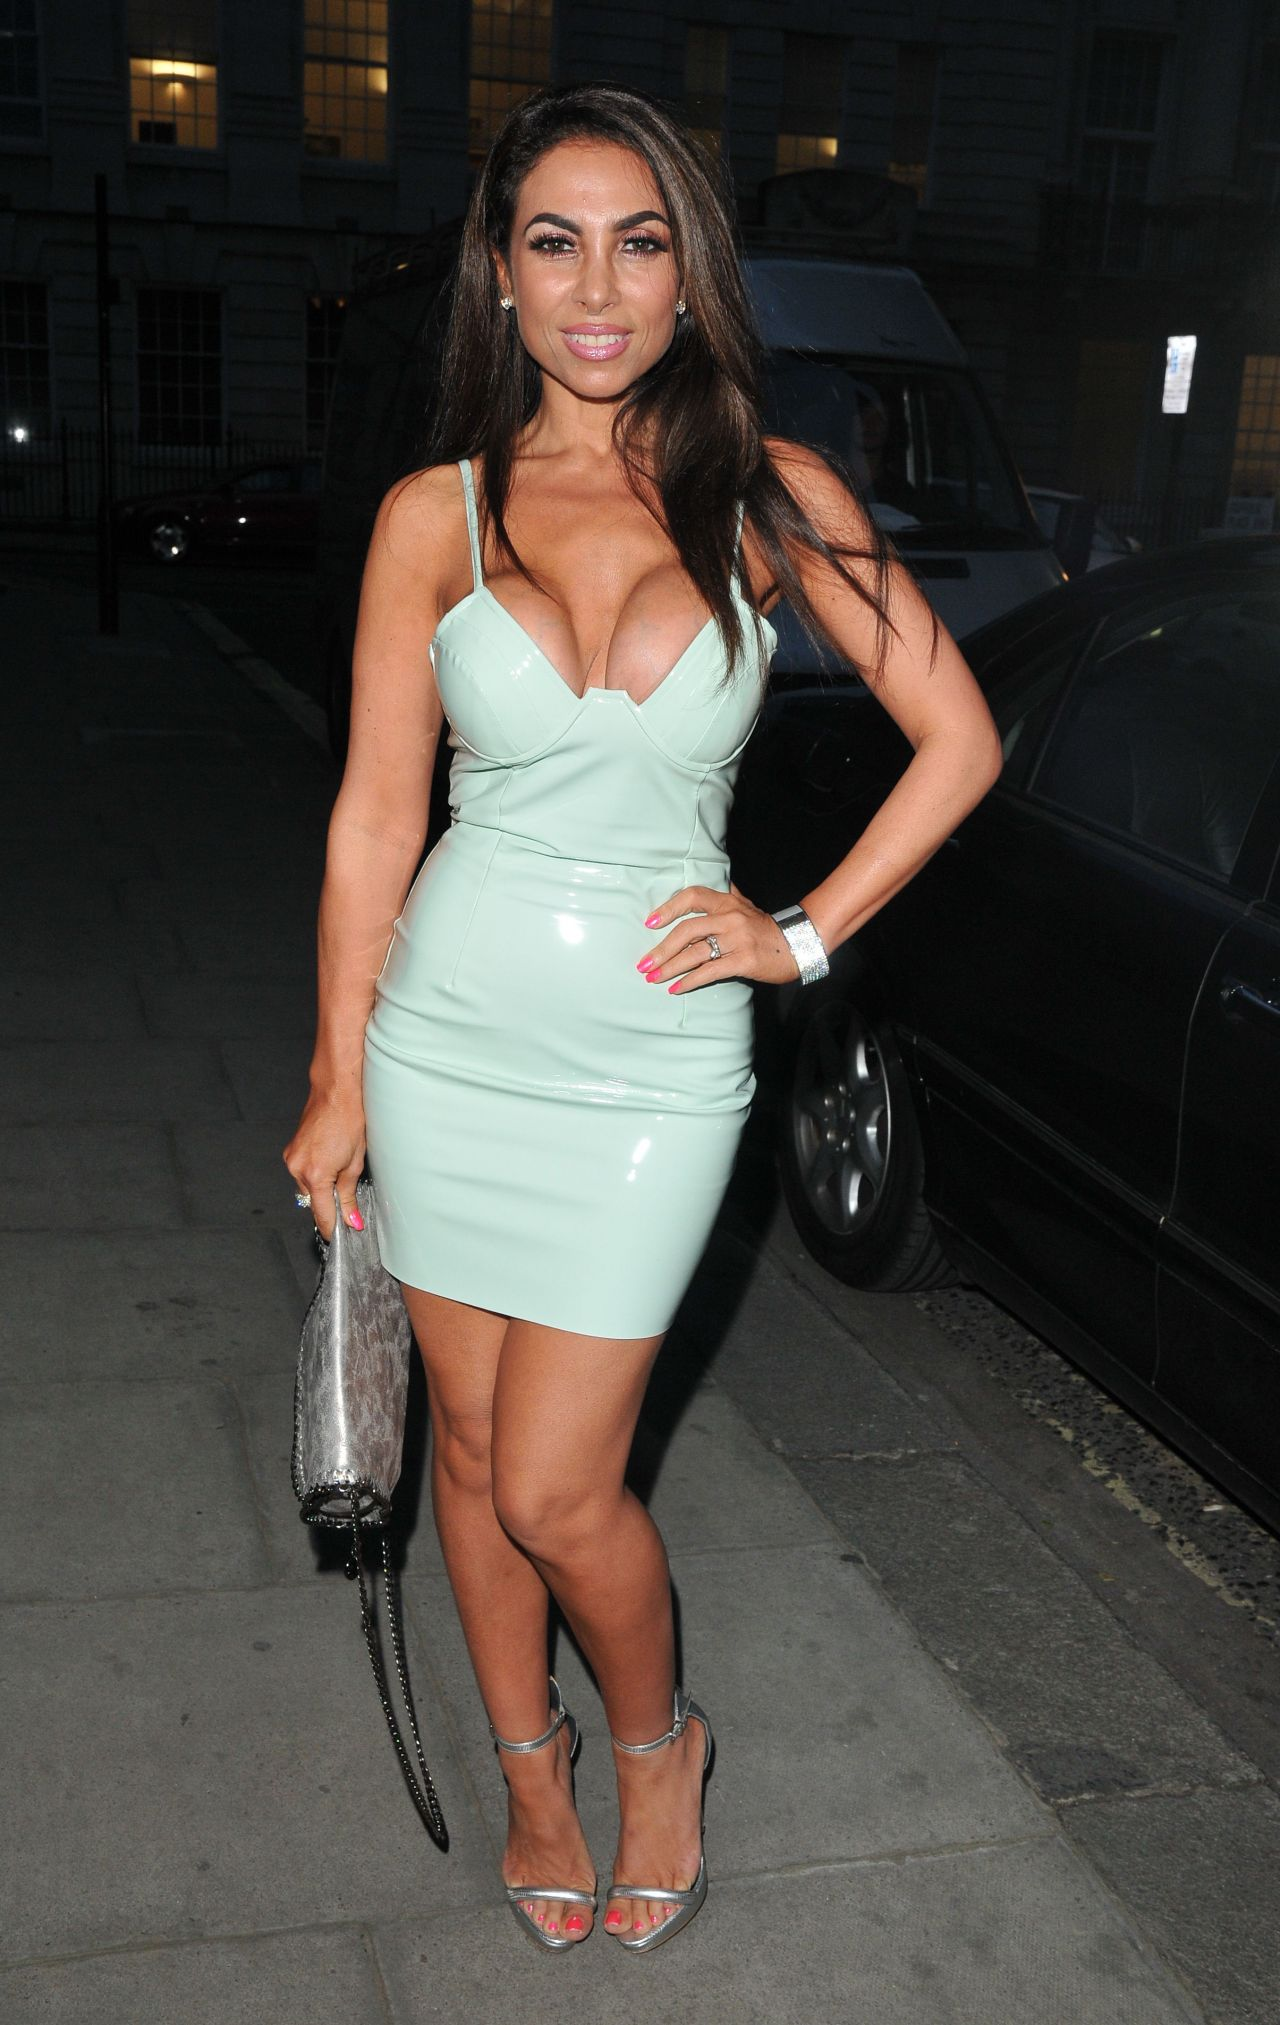 Francine Lewis Latest Photos Celebmafia